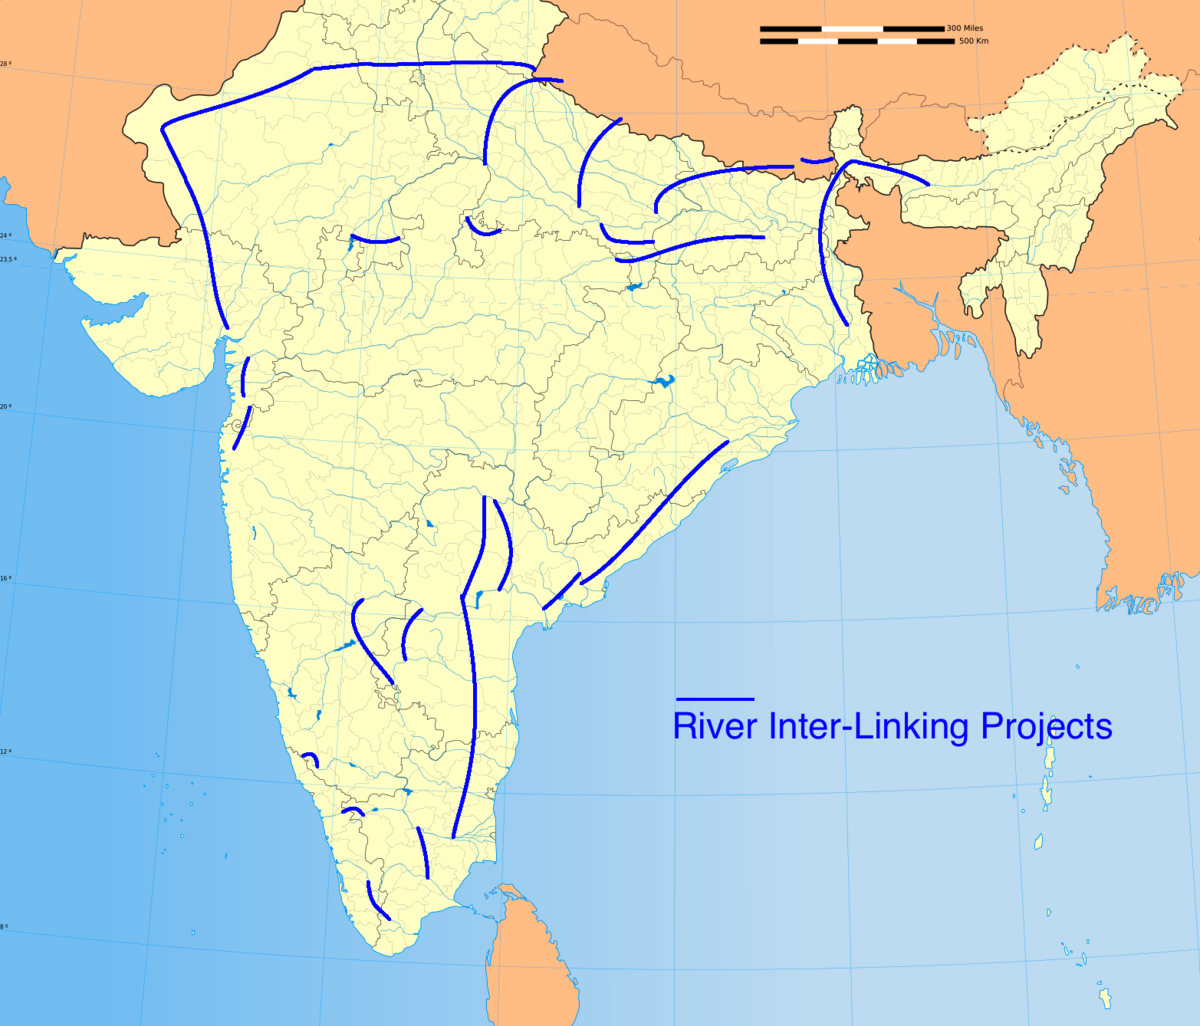 major rivers in india and bangladesh relationship